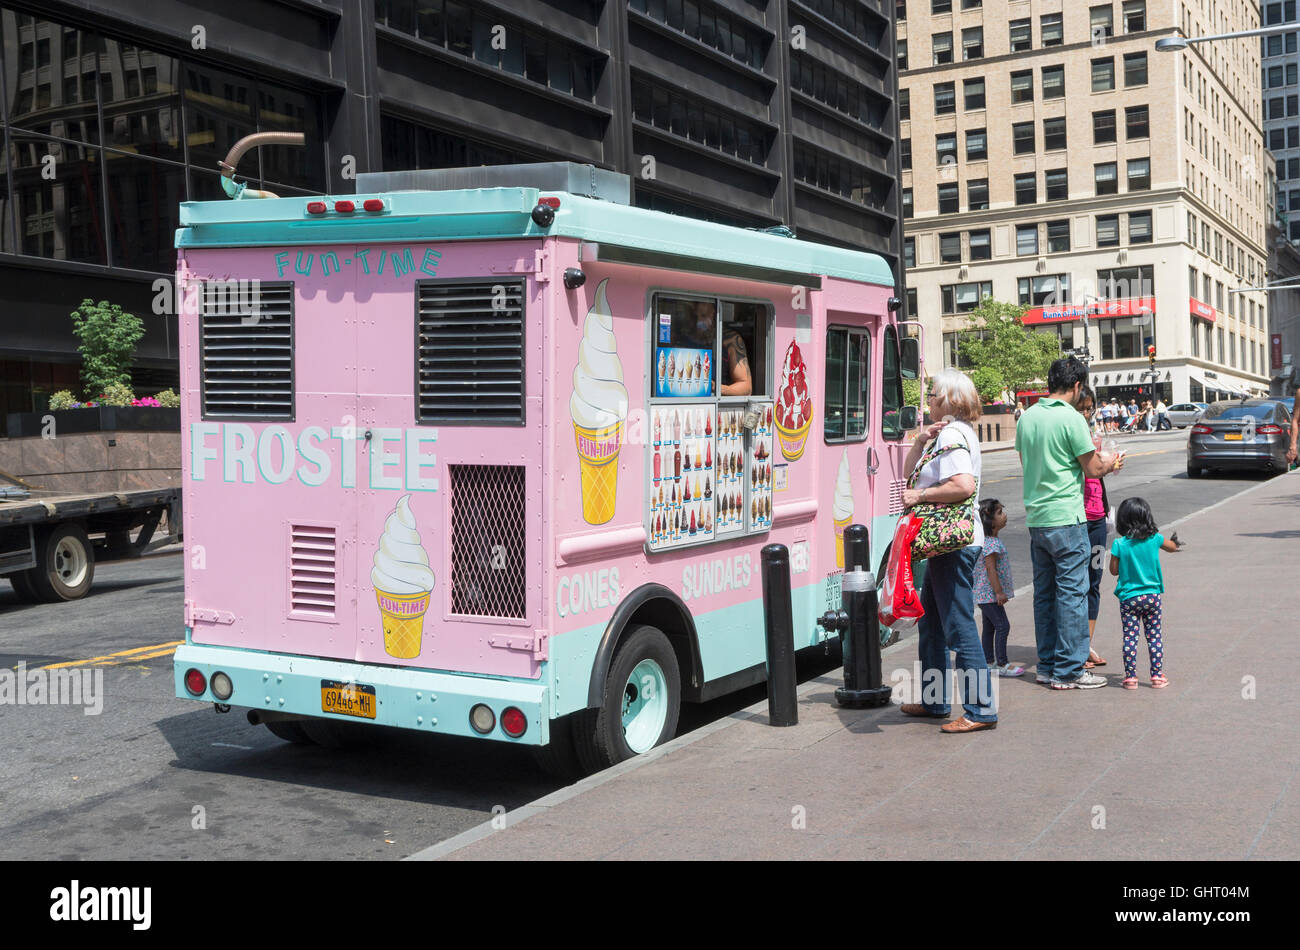 Woman and family buying ice creams from an ice cream van during a heatwave in downtown New York - Stock Image